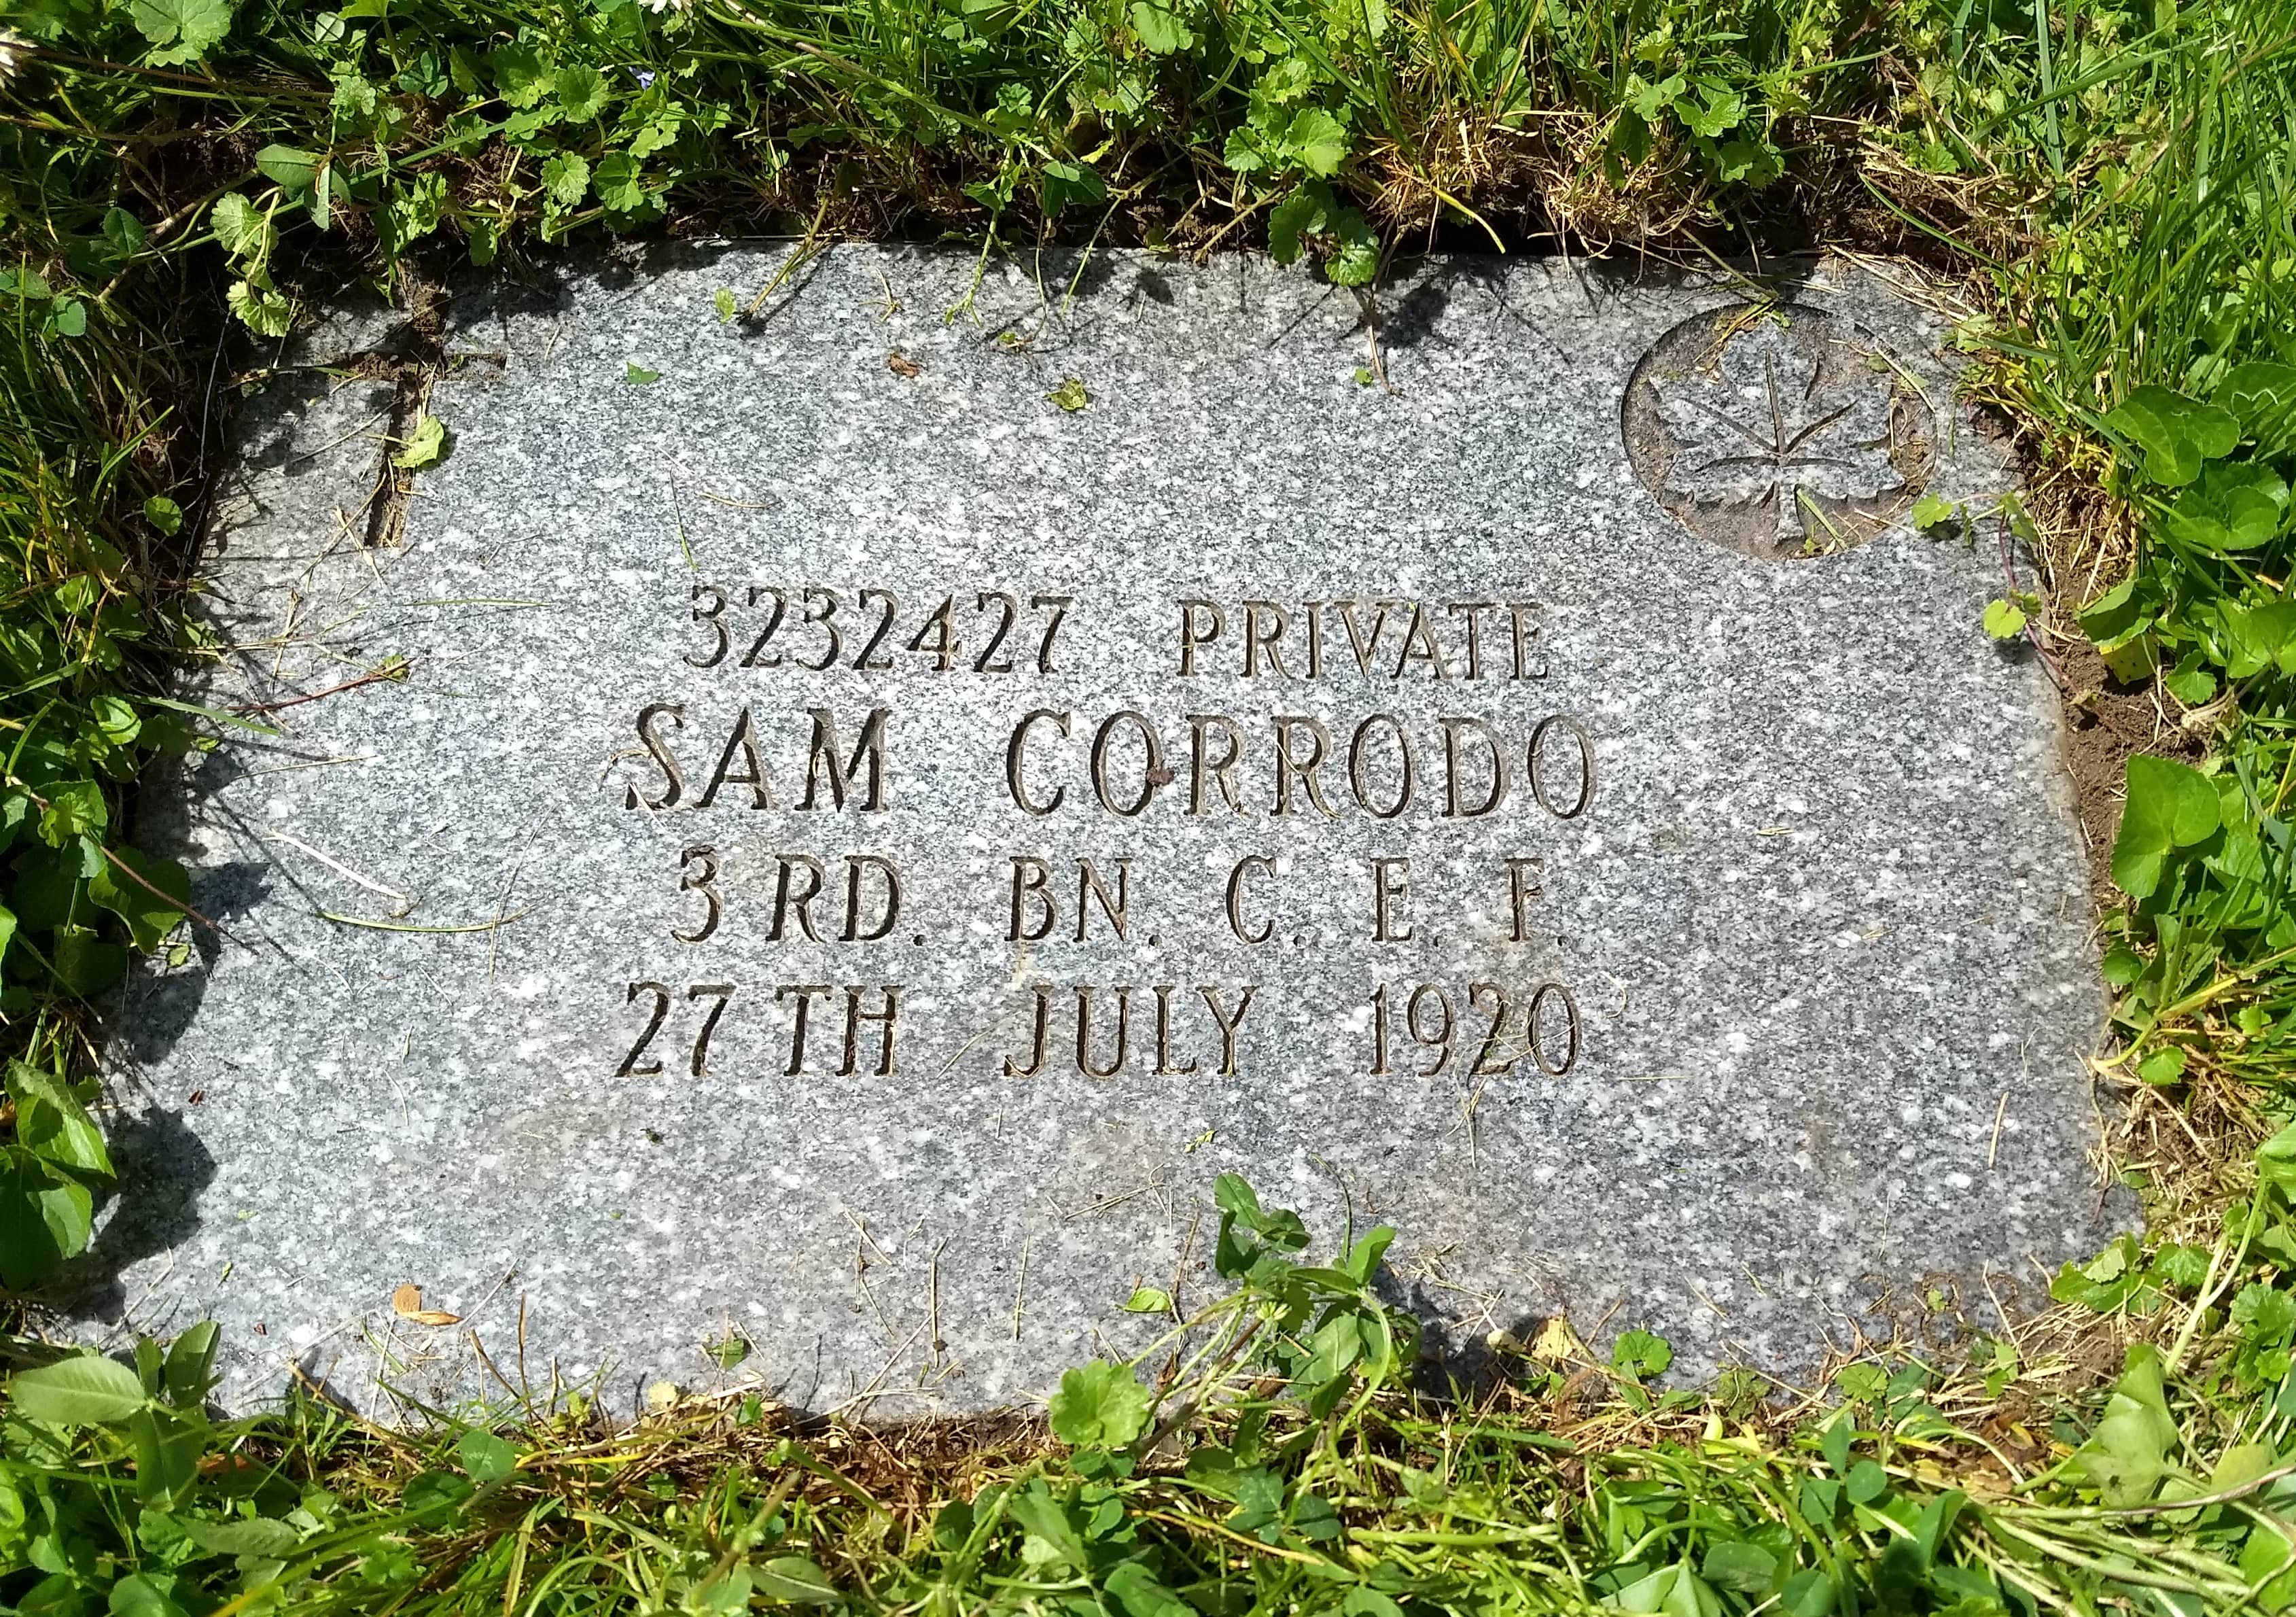 Grave marker– The final resting place of Sam Corrodo.